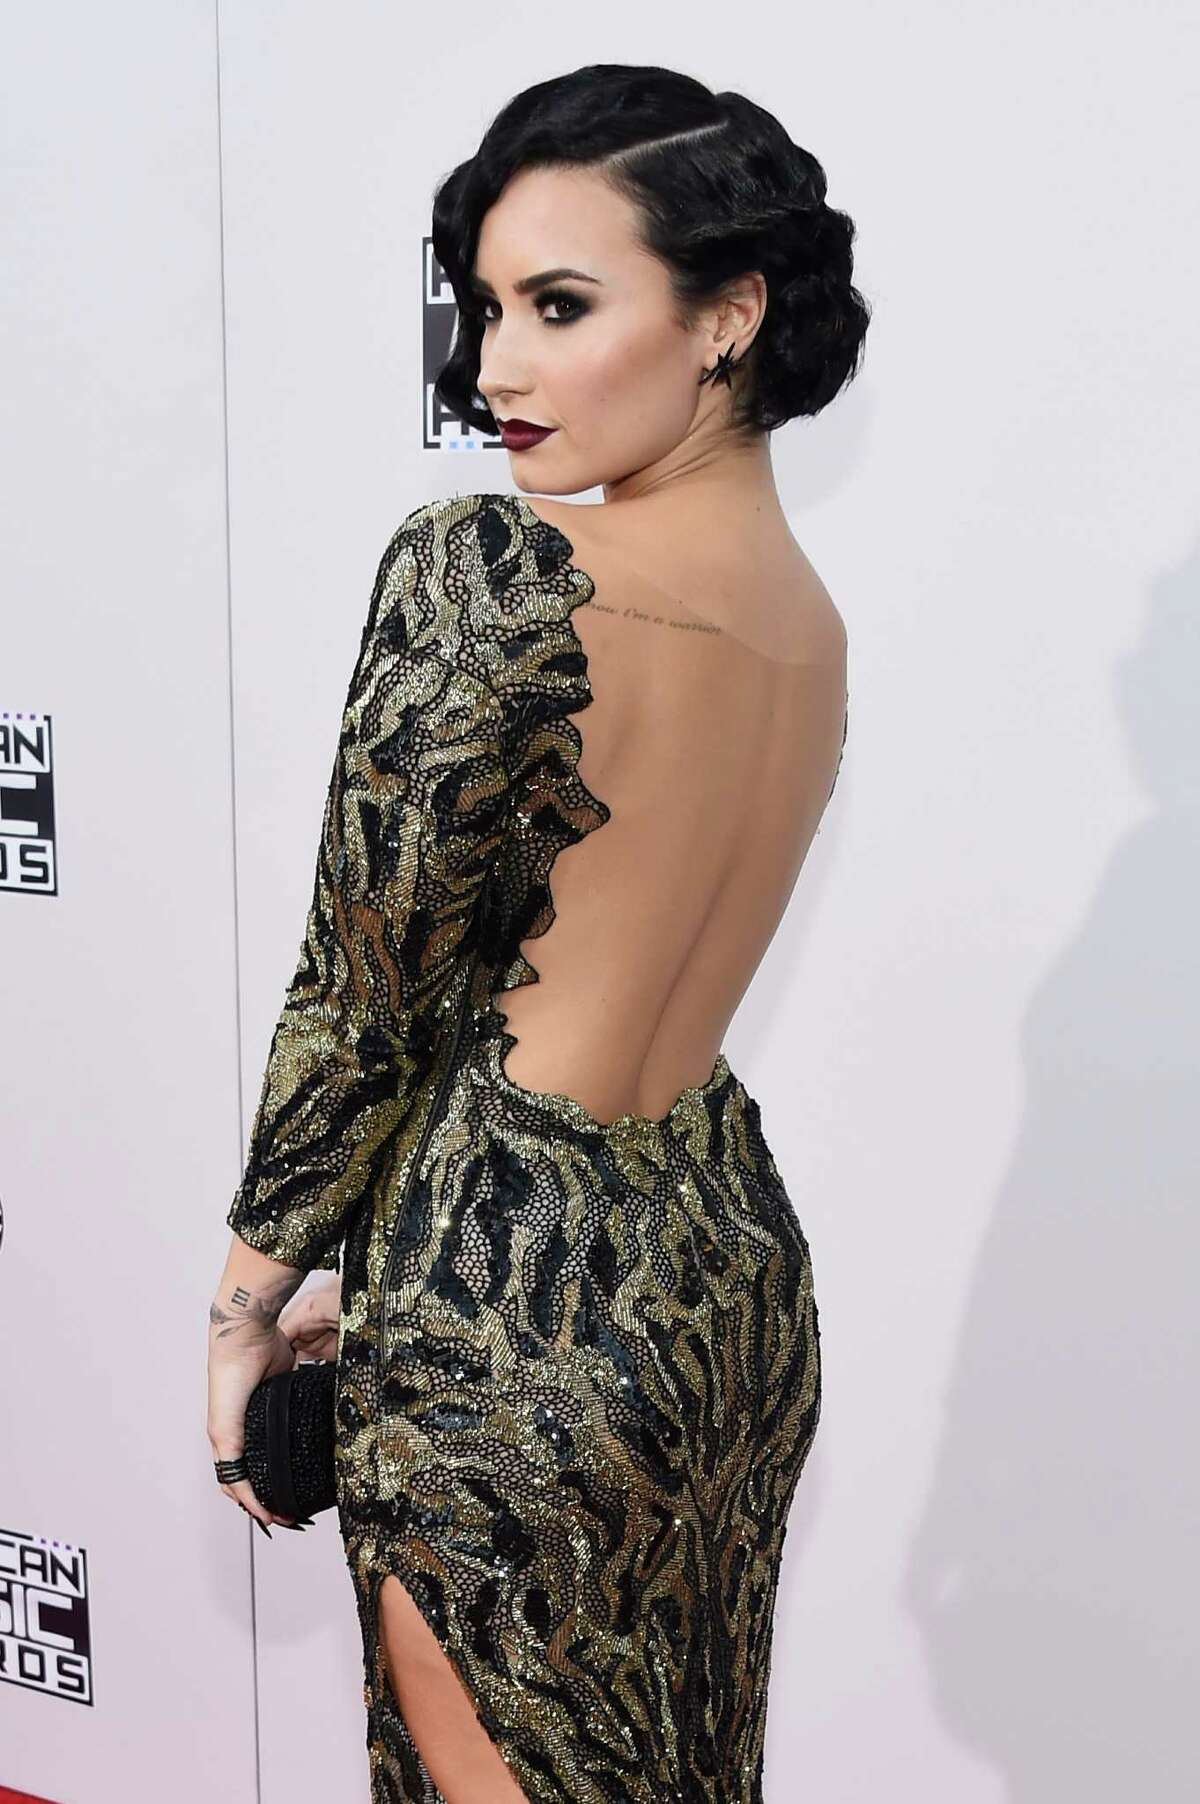 Recording artist Demi Lovato attends the 2015 American Music Awards red carpet arrivals sponsored by FIAT 500X at LA Live on November 22, 2015 in Los Angeles, California